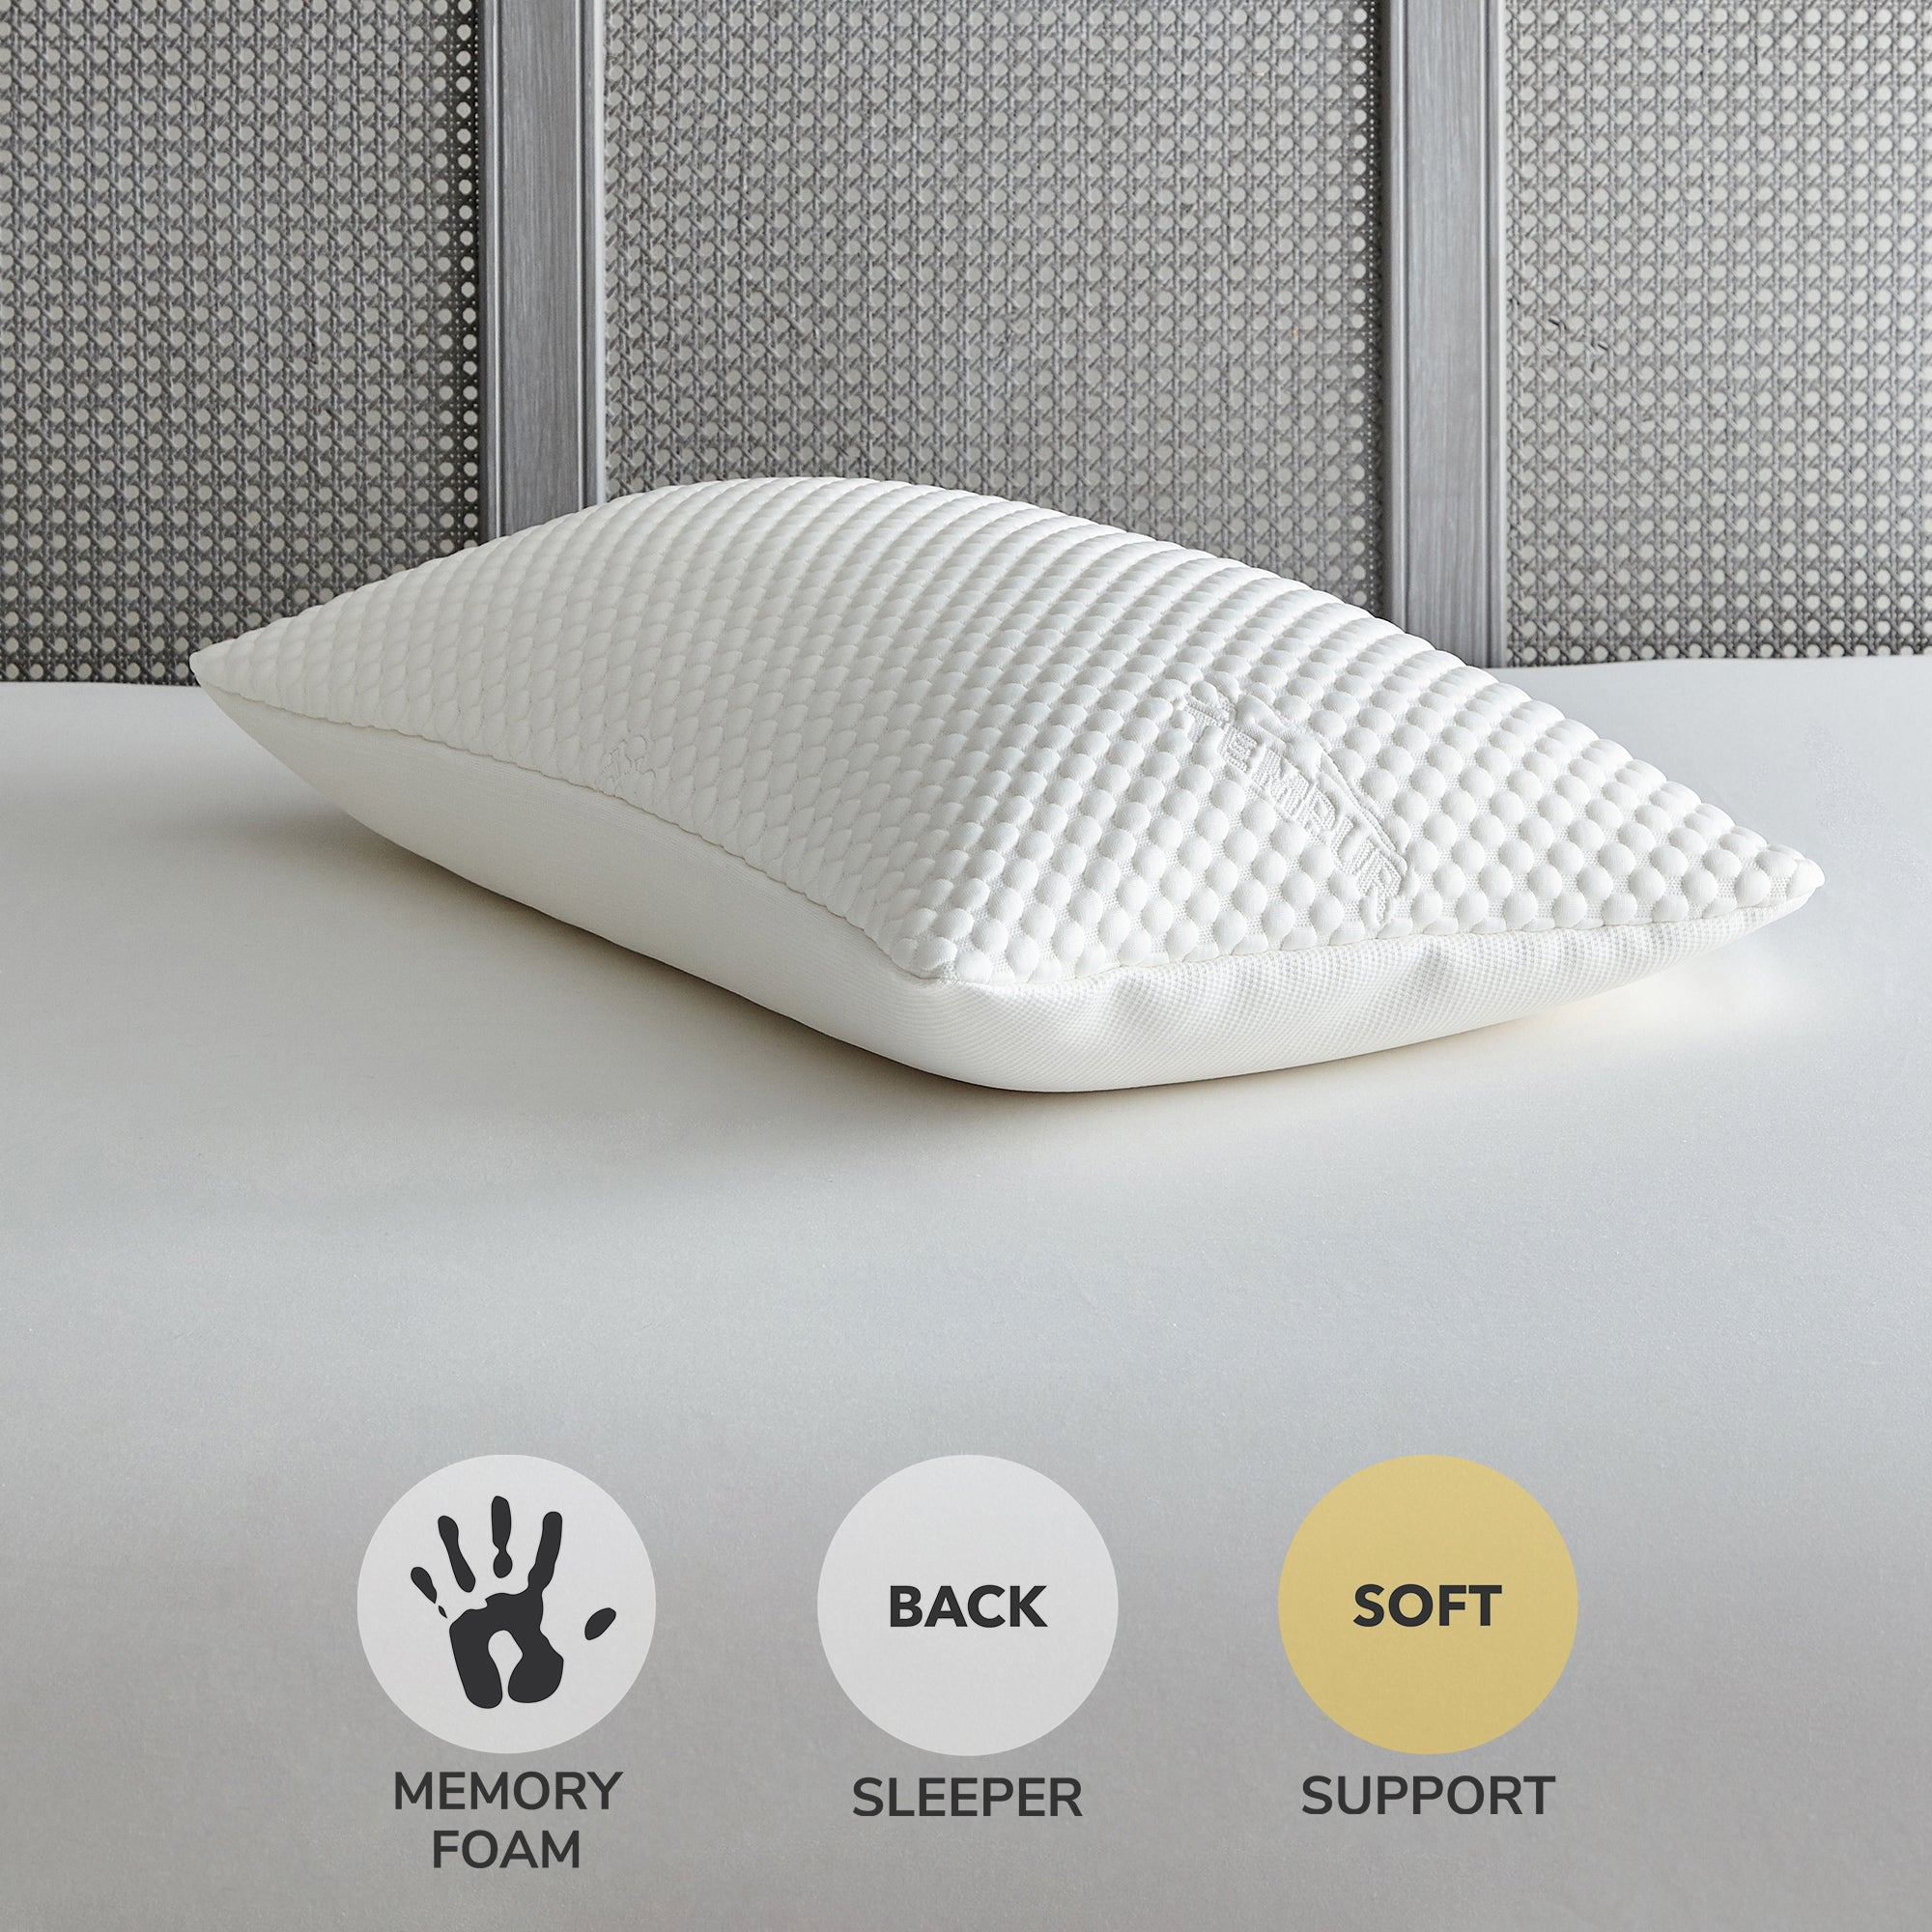 Tempur Cloud Pillow